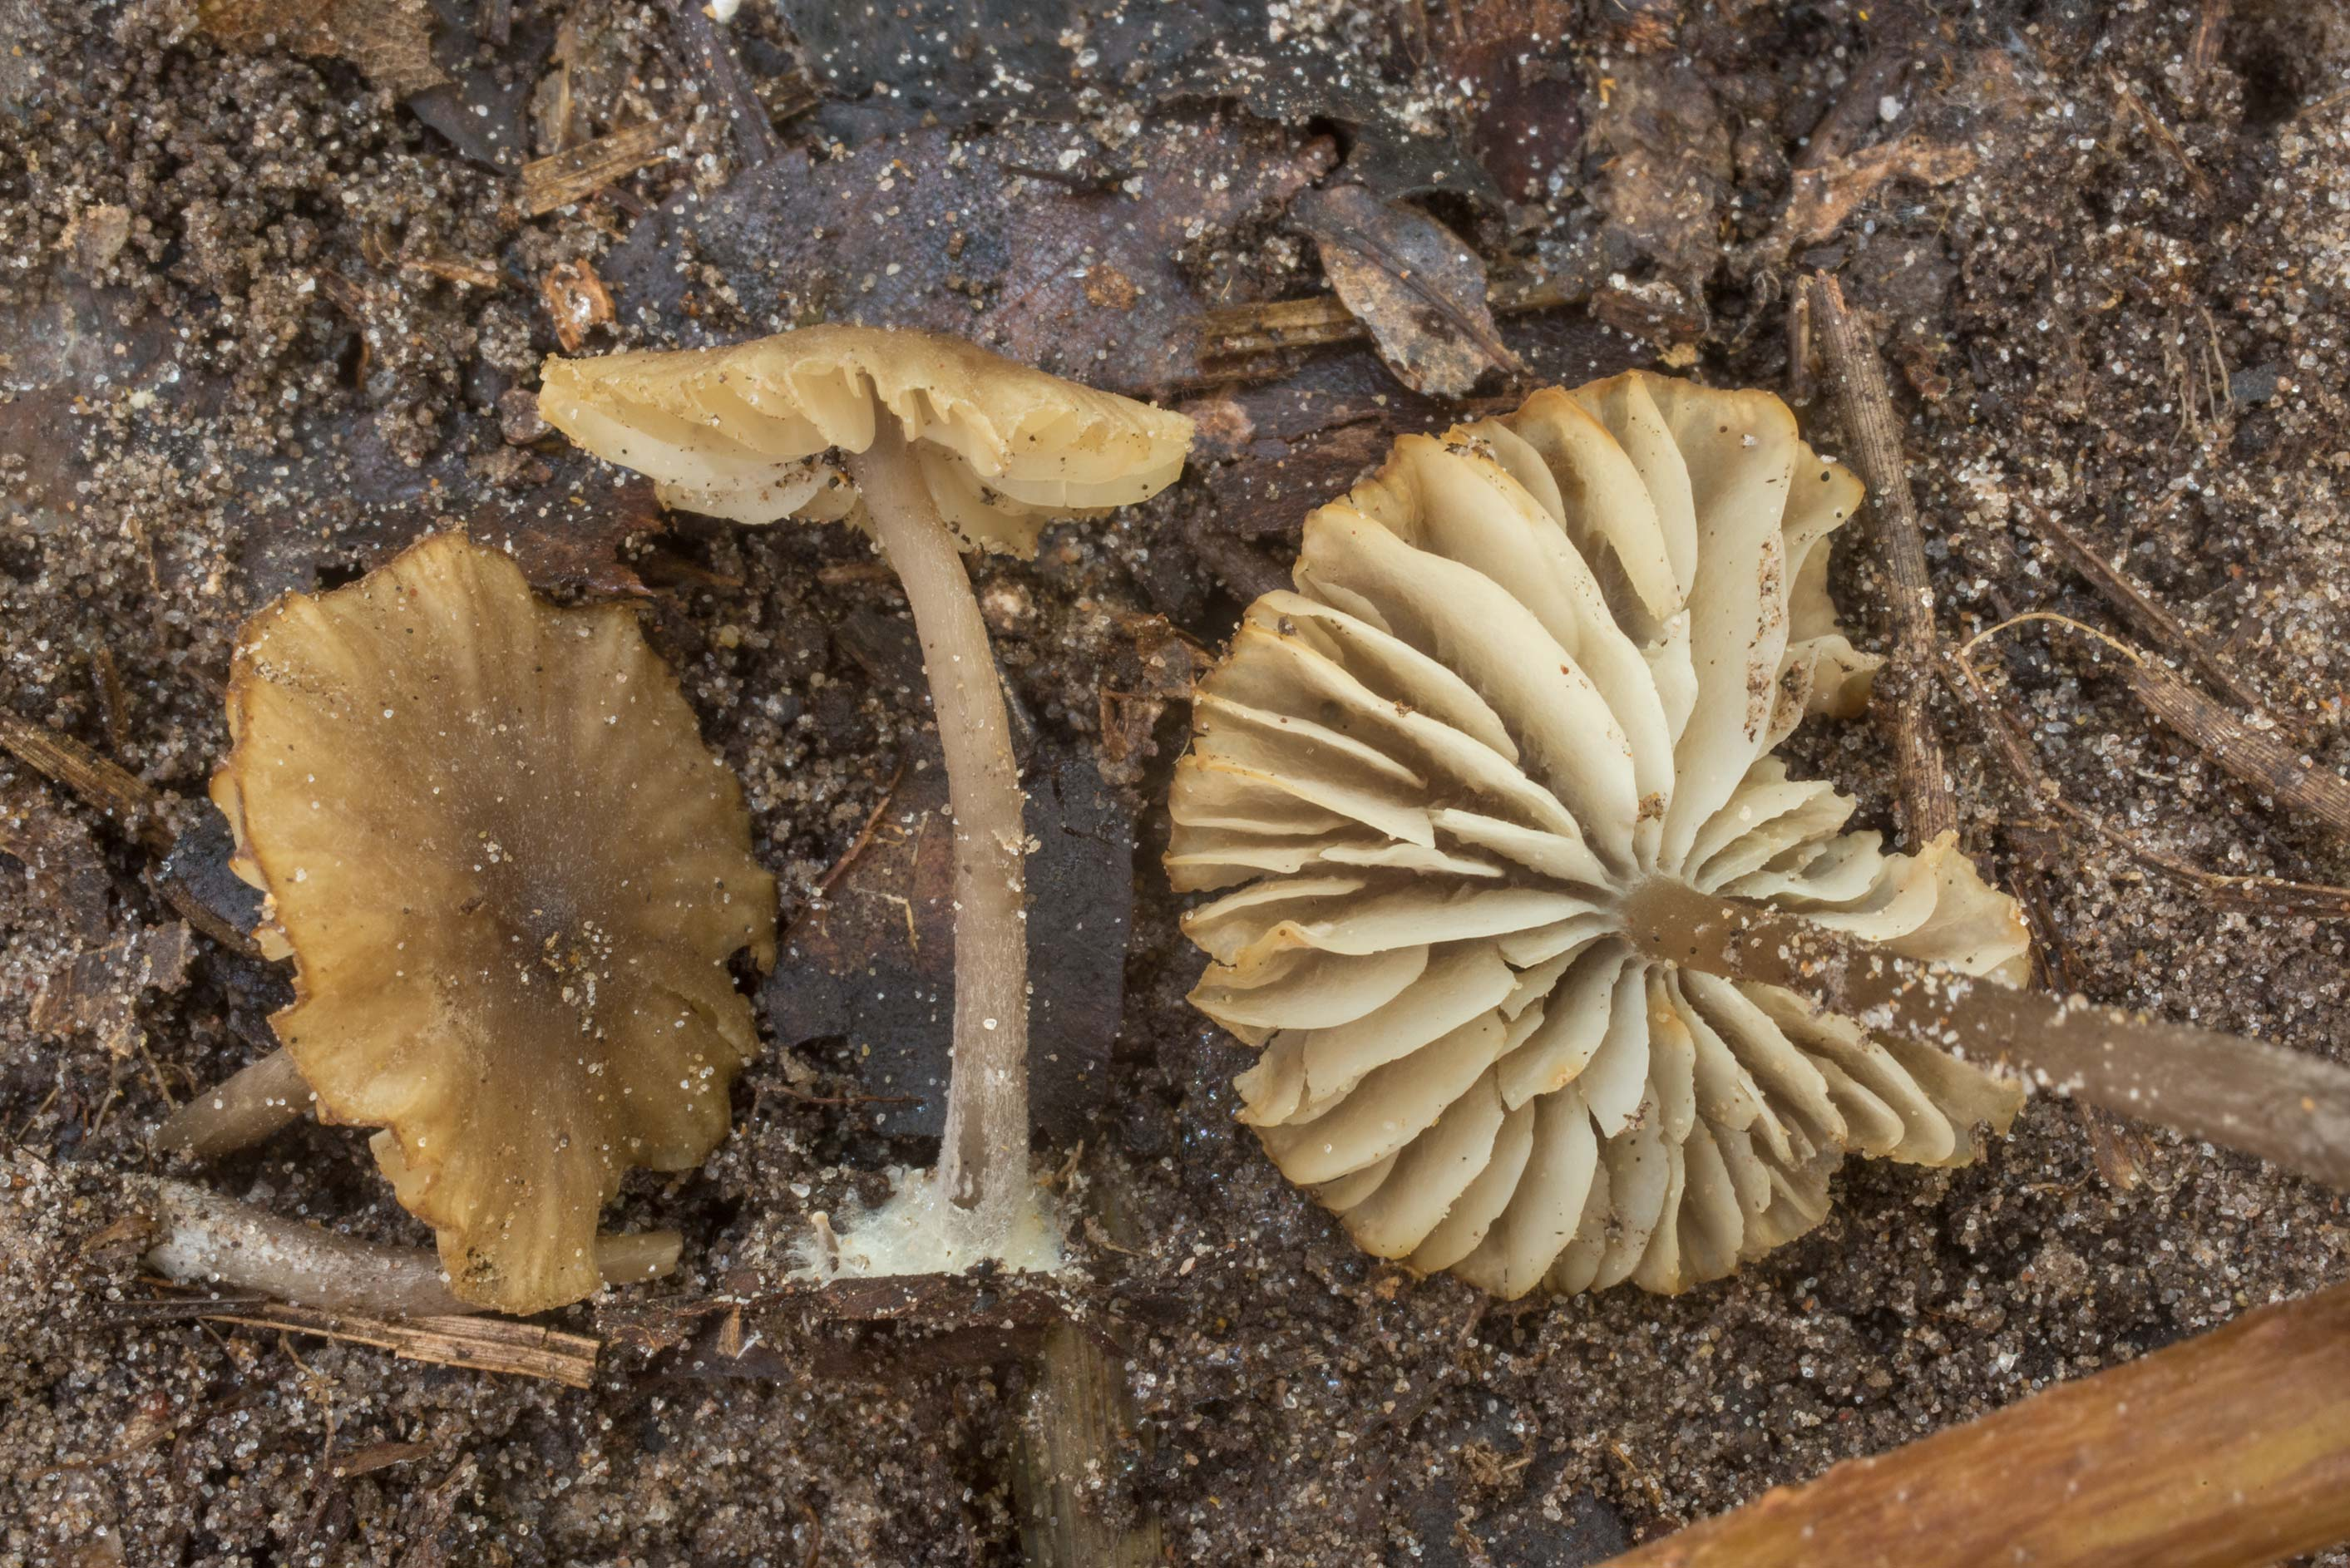 Gills of Neohygrocybe mushrooms on Winters Bayou...National Forest. Cleveland, Texas